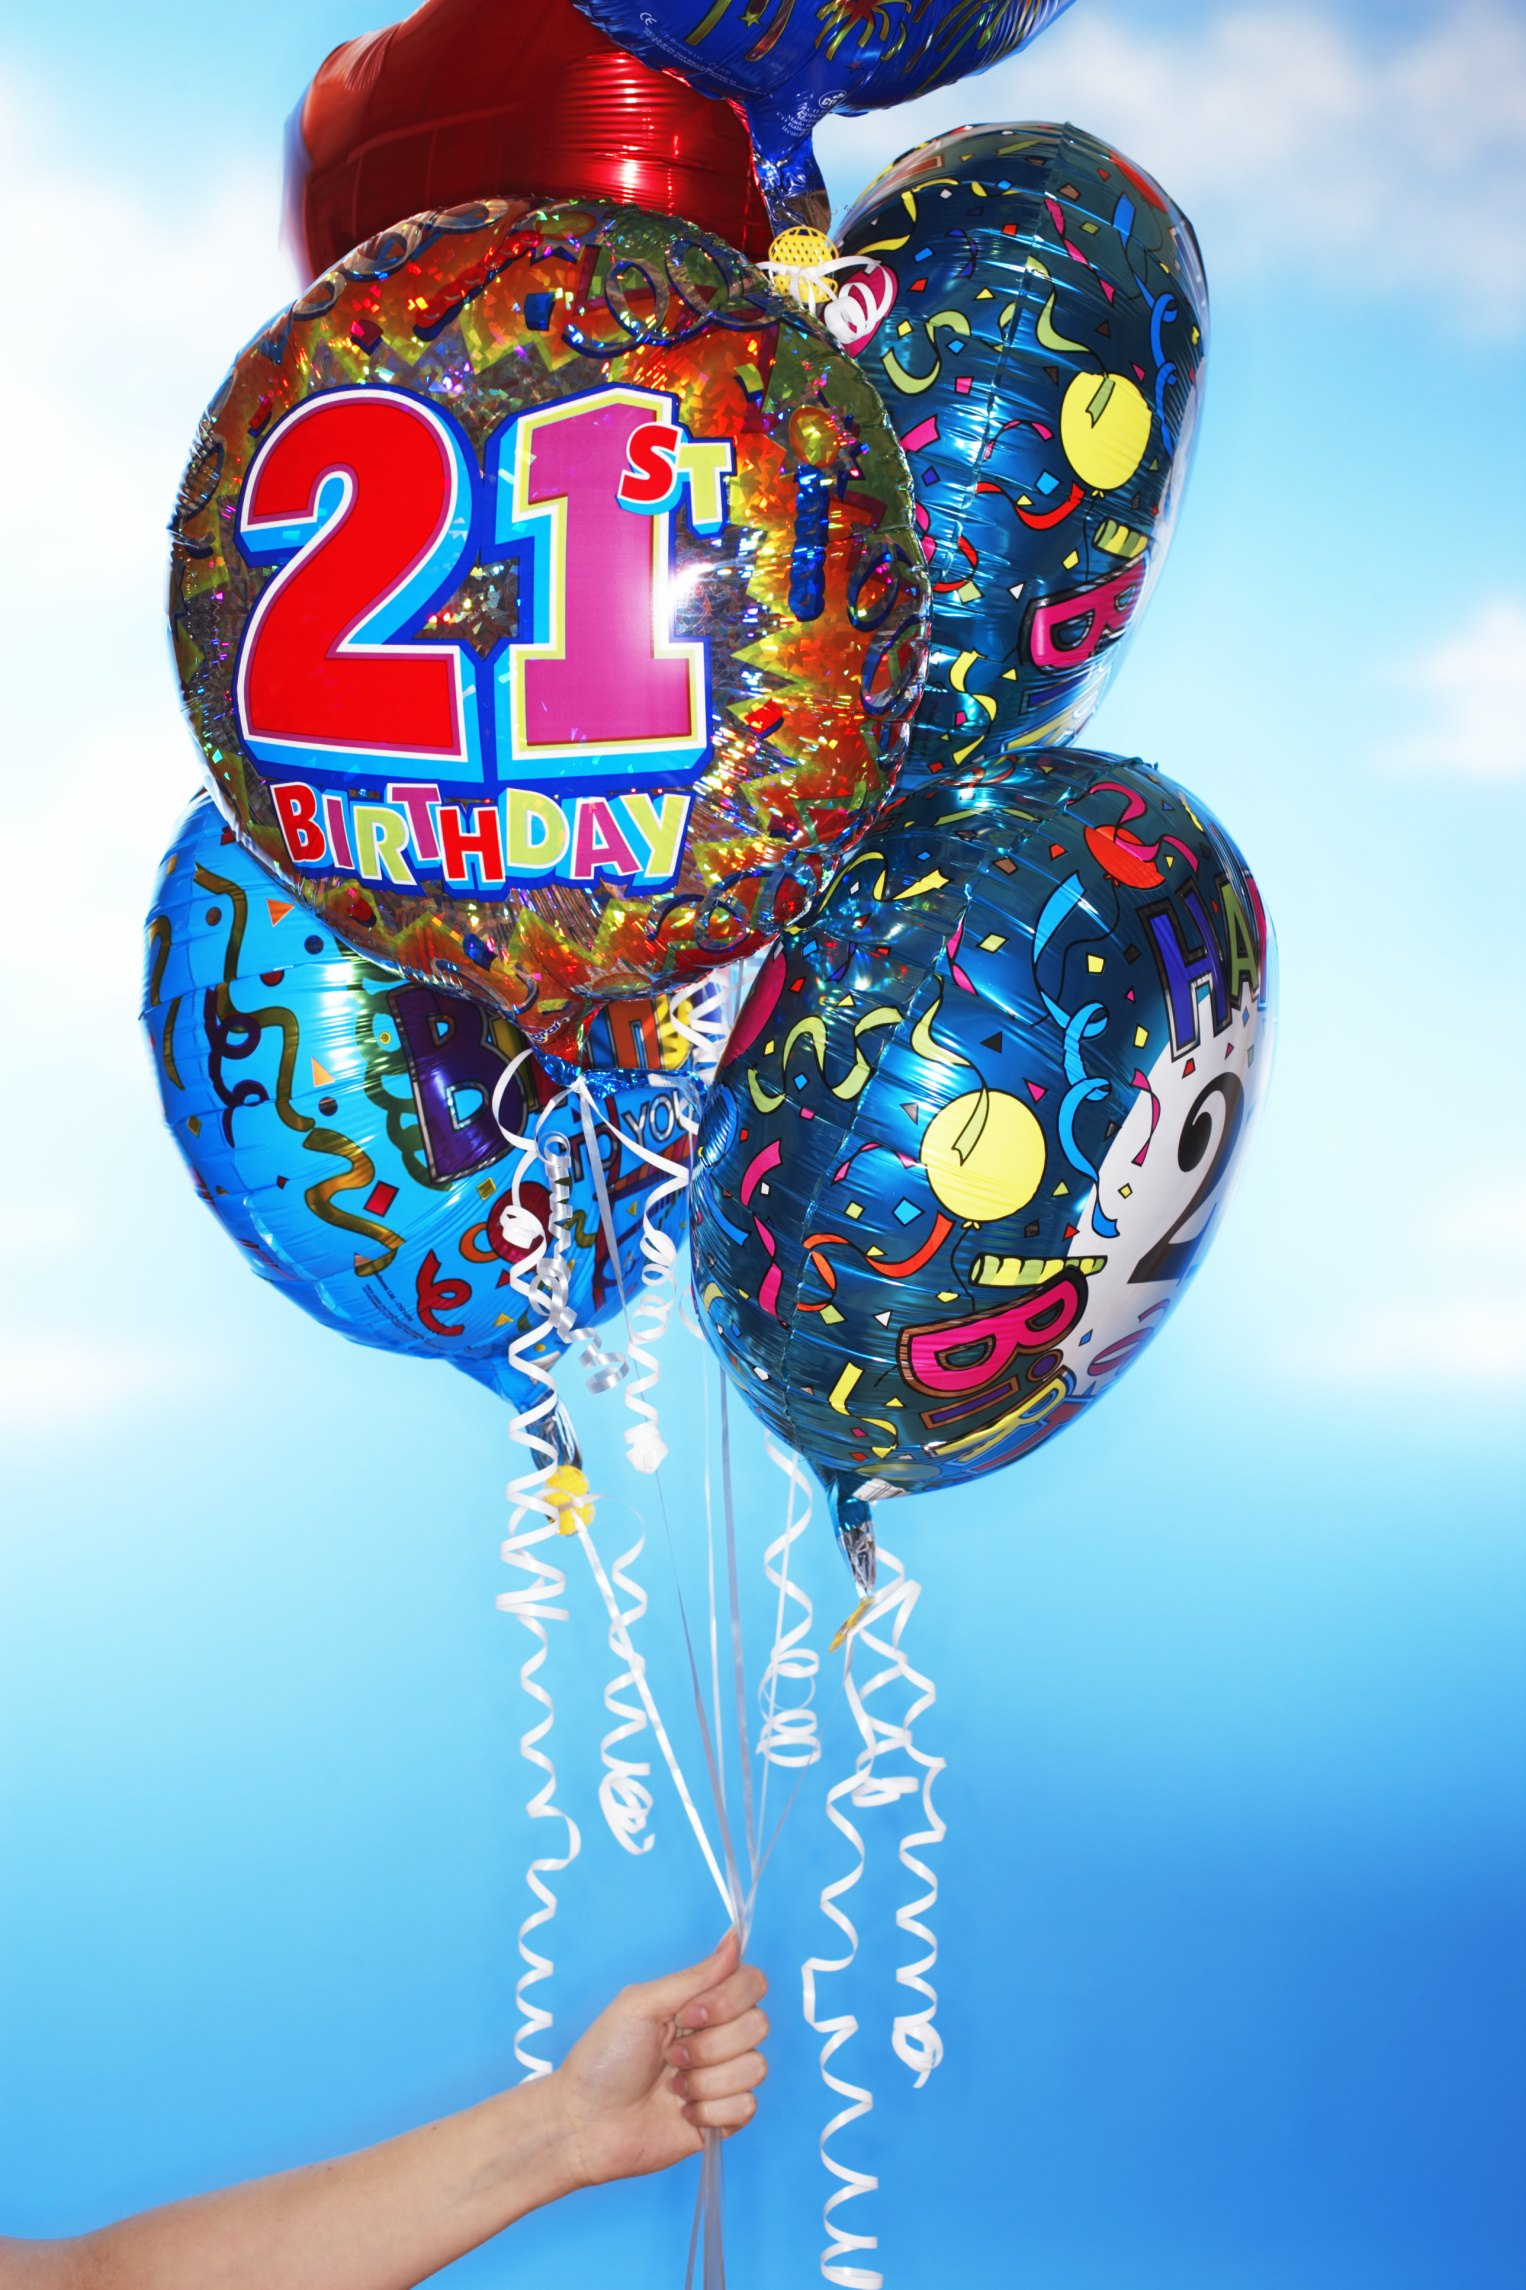 Top 21 Things To Do On Your 21st Birthday With Pictures